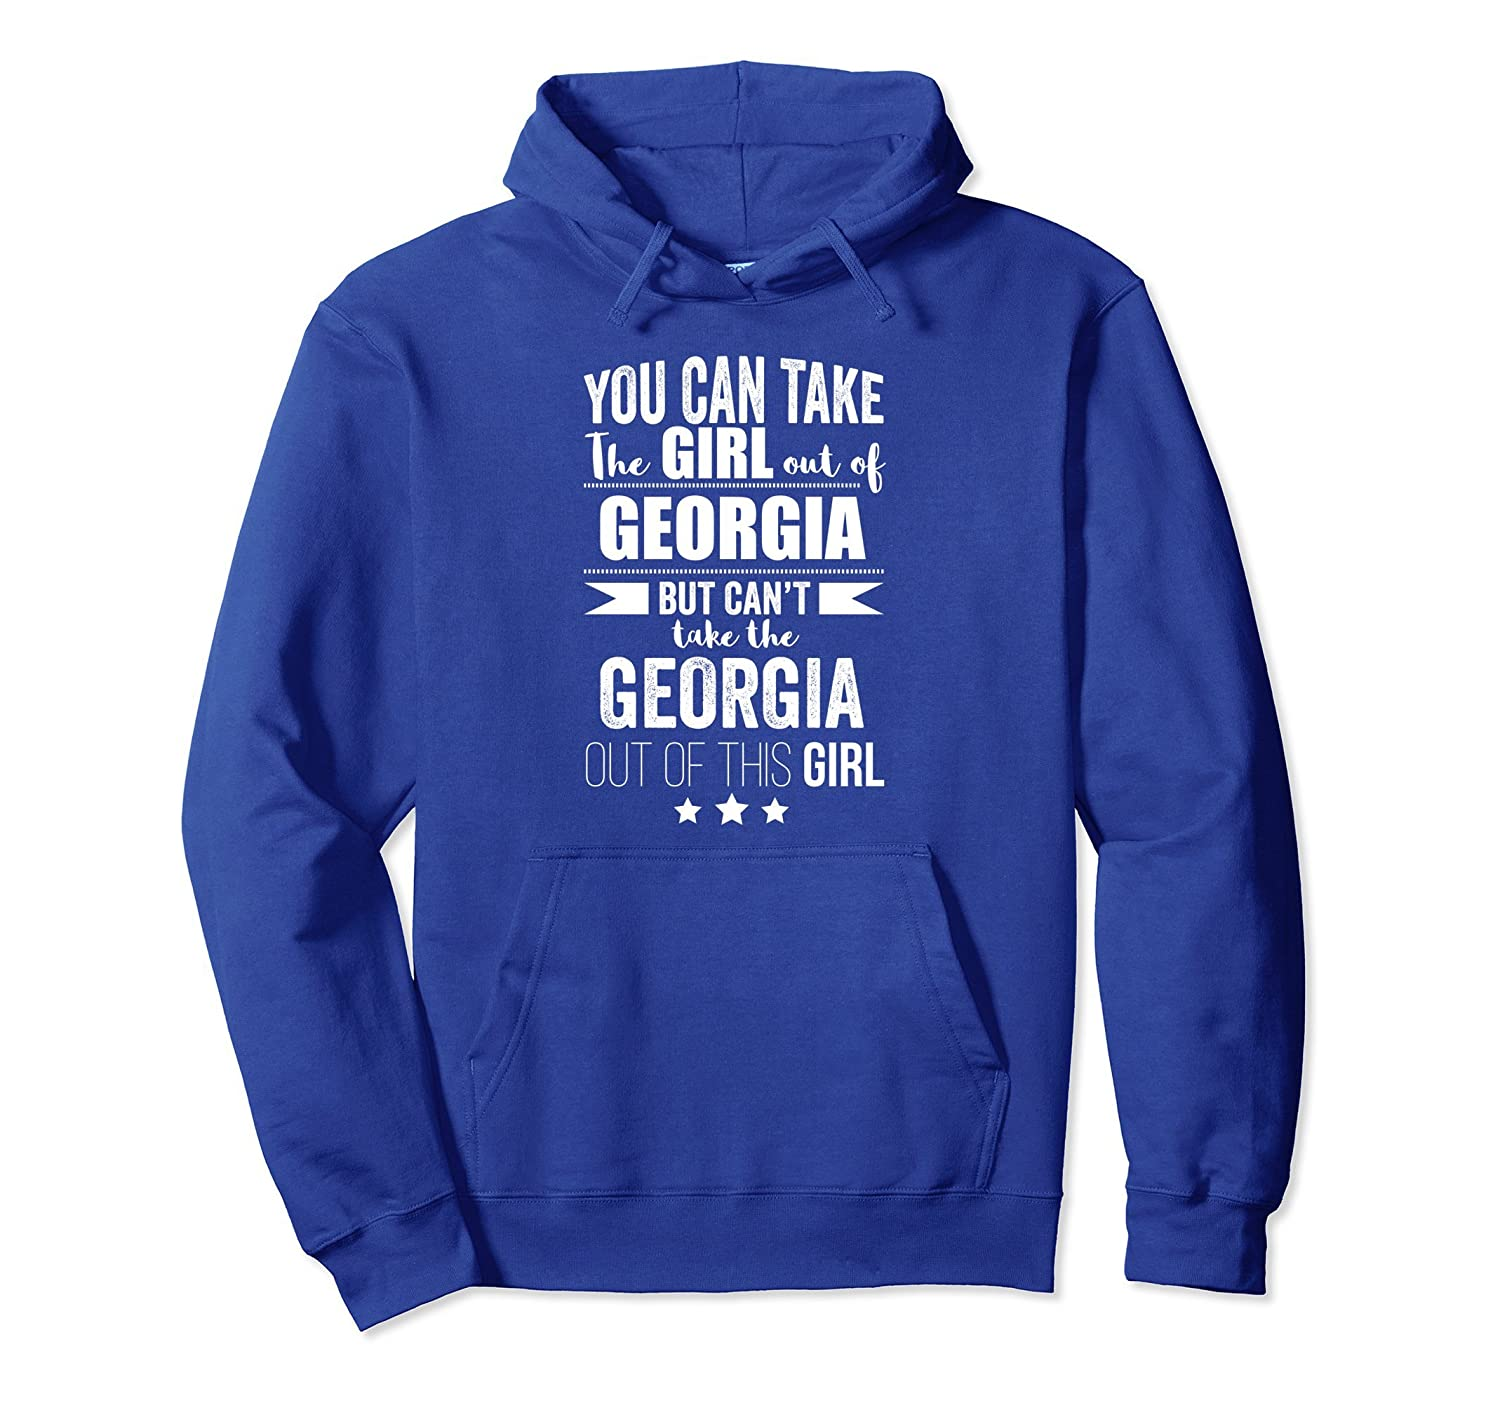 Can take the Girl out of Georgia Hoodie South Pride Proud-mt